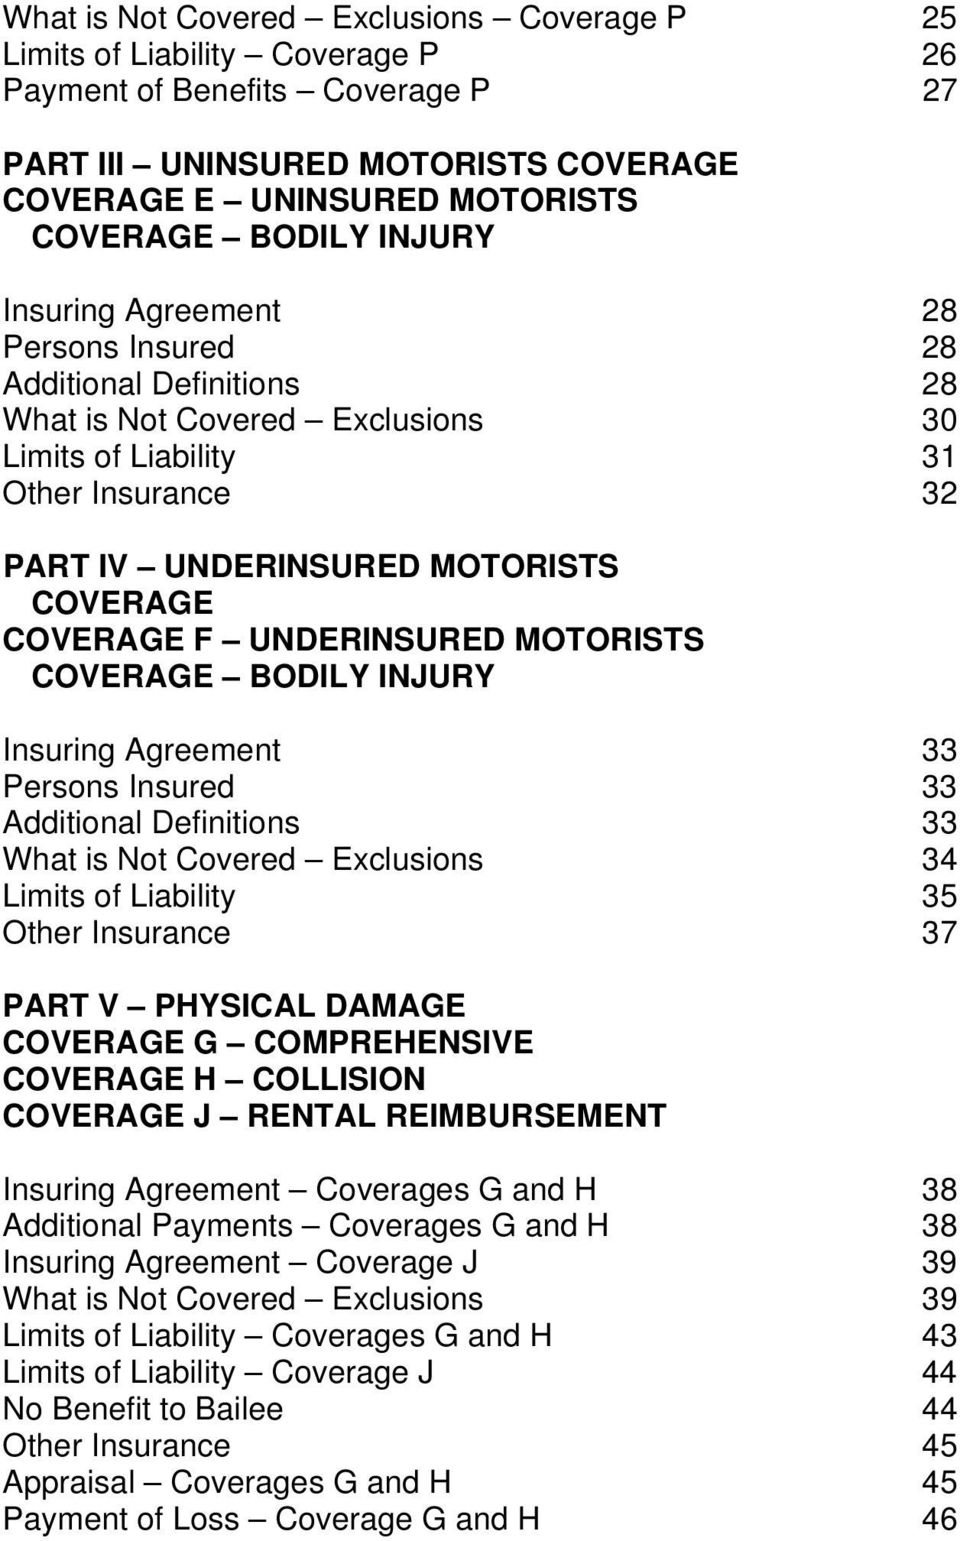 F UNDERINSURED MOTORISTS COVERAGE BODILY INJURY Insuring Agreement 33 Persons Insured 33 Additional Definitions 33 What is Not Covered Exclusions 34 Limits of Liability 35 Other Insurance 37 PART V